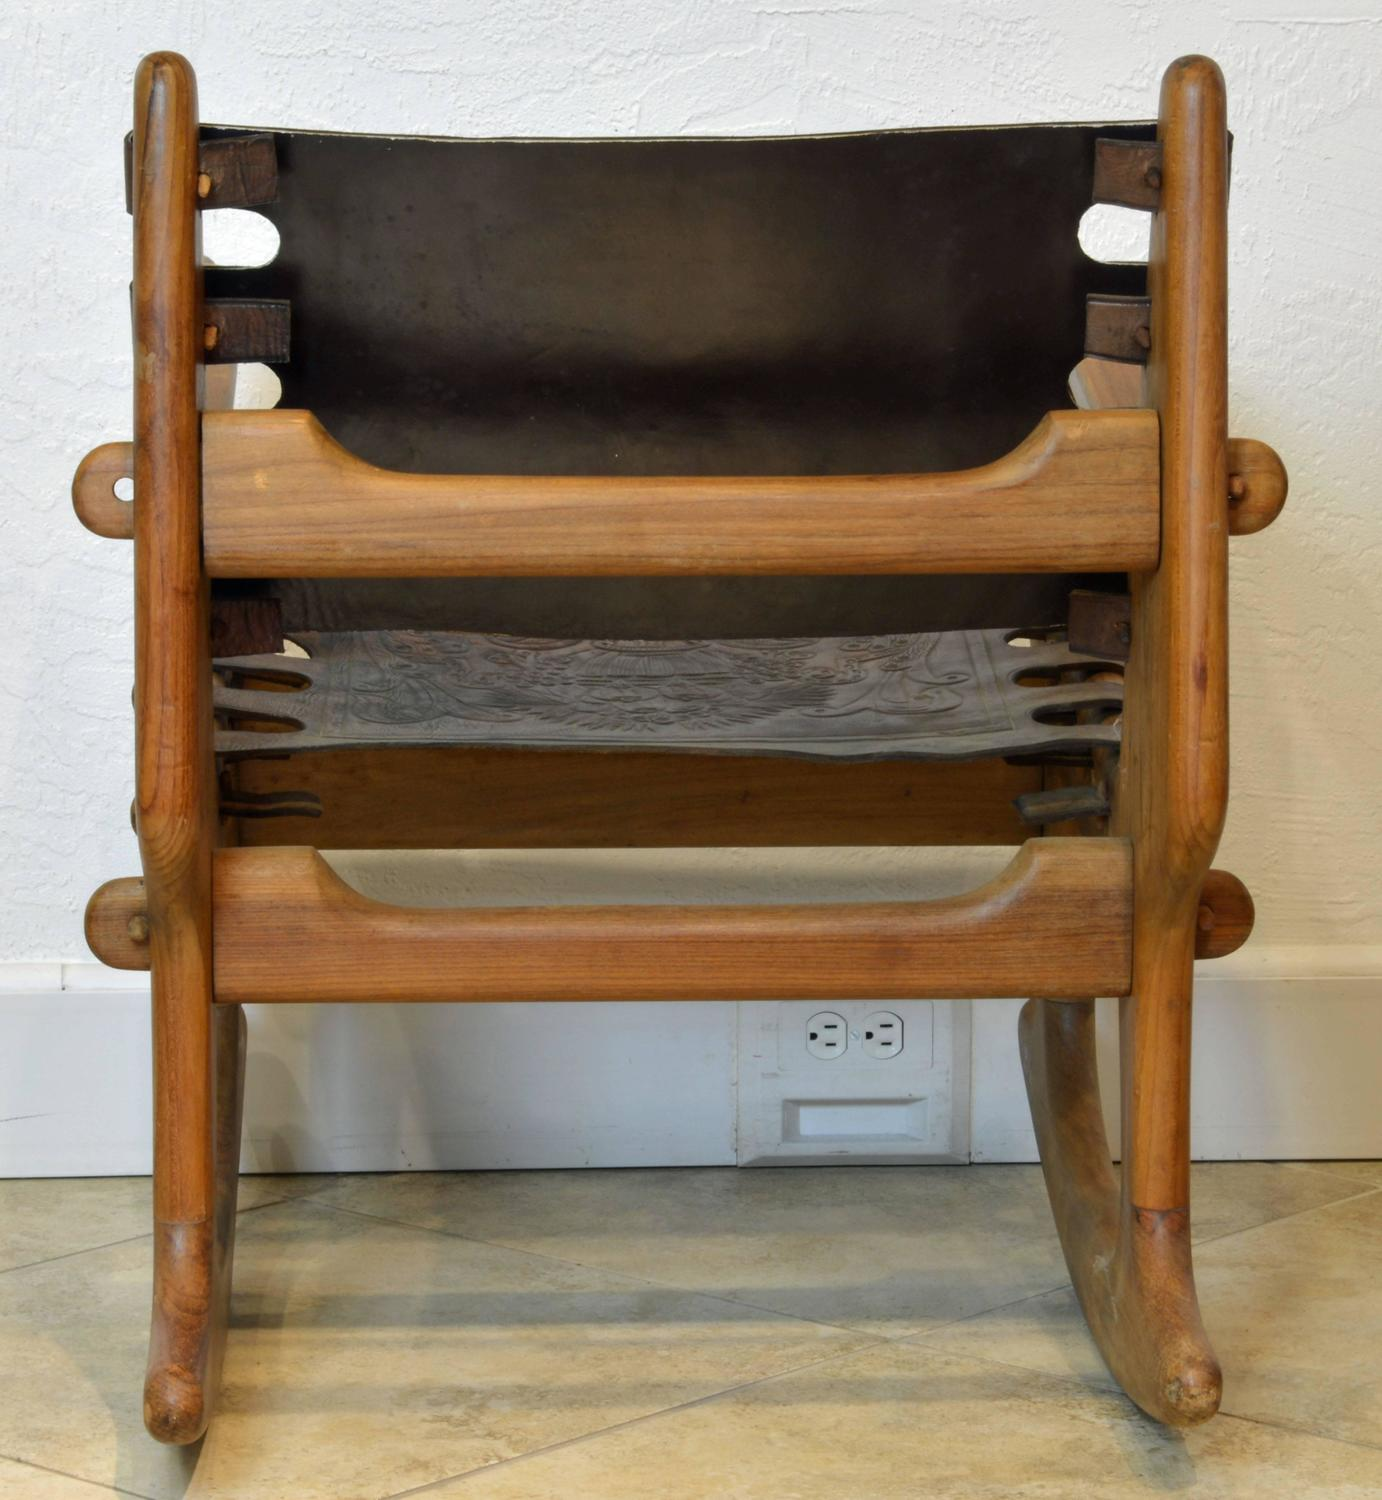 rocking chair leather and wood rush seat chairs repair mid century modern ecuadorian